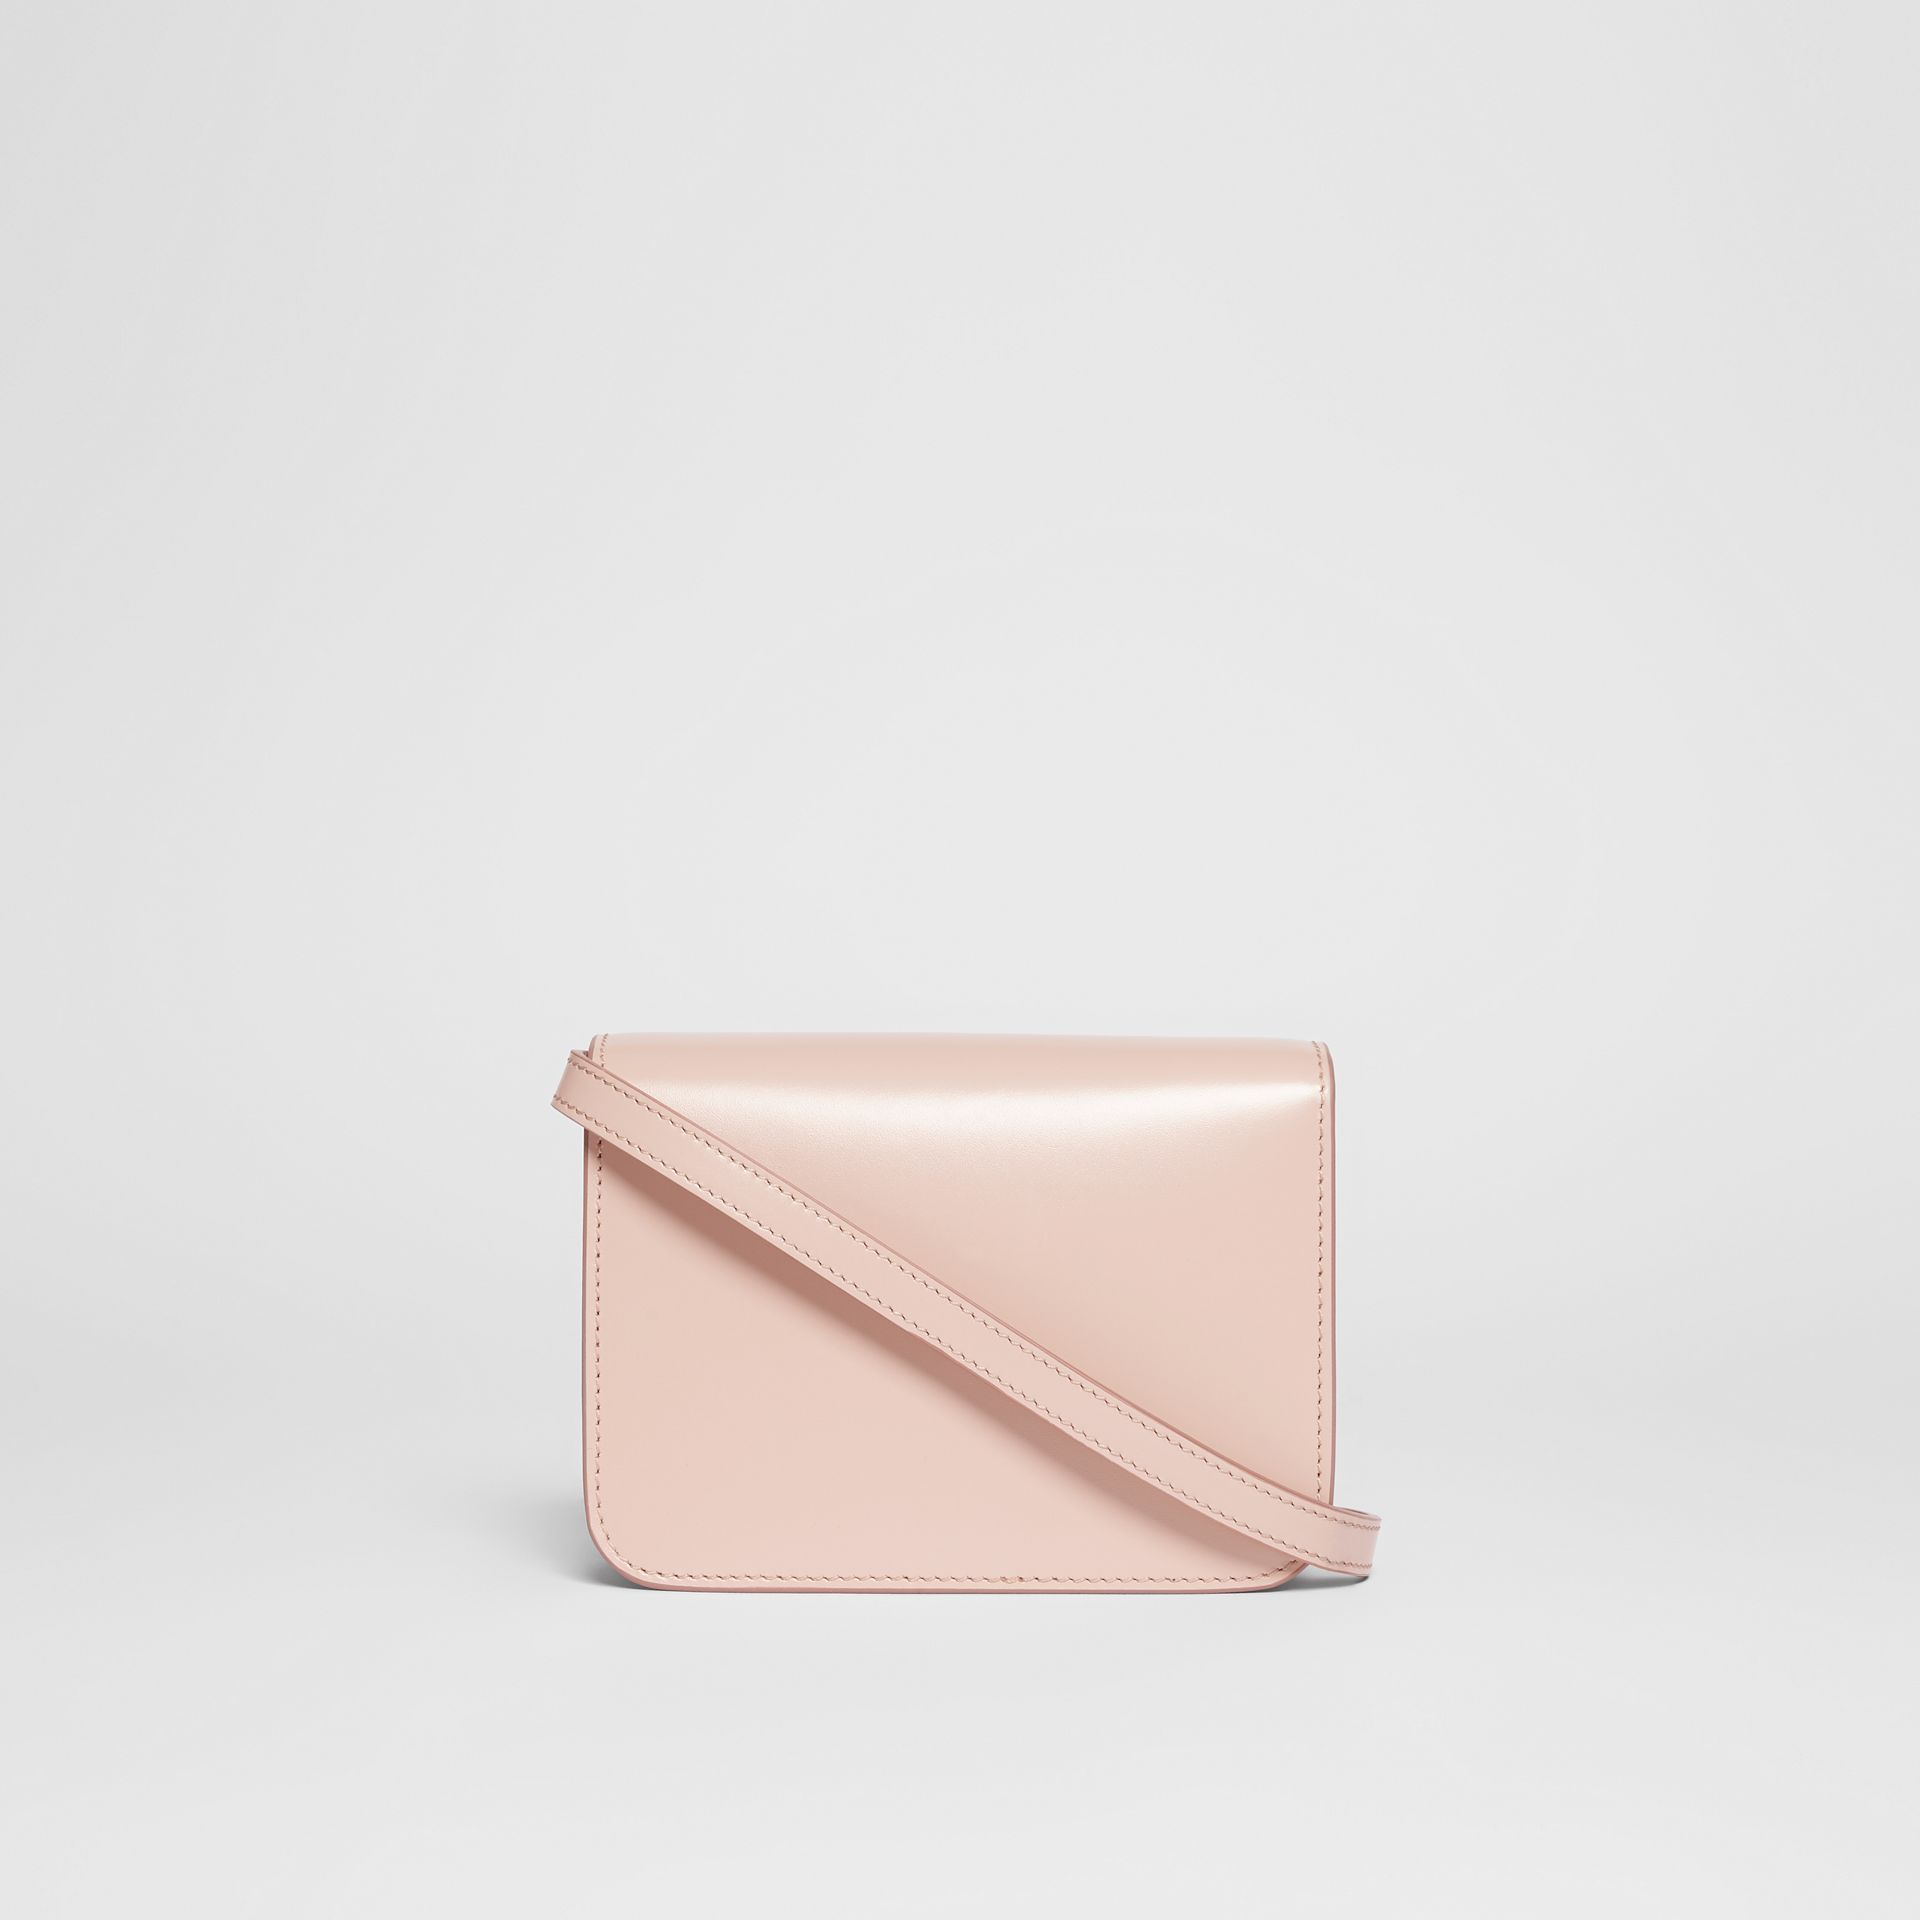 Mini Leather TB Bag in Rose Beige - Women | Burberry United States - gallery image 7